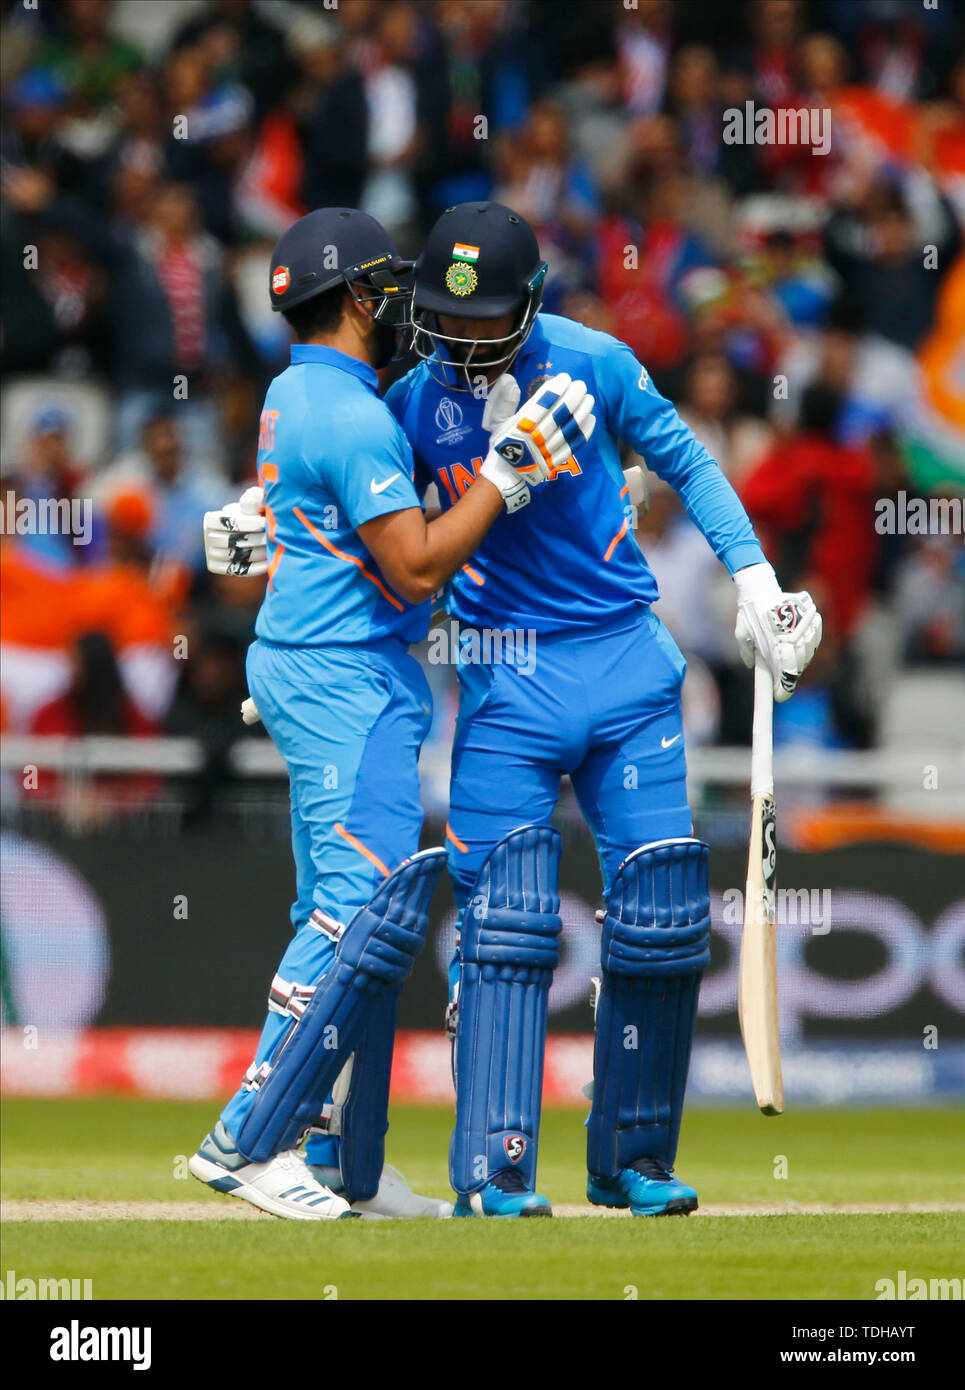 Old Trafford, Manchester, UK. 16th June, 2019. ICC World Cup Cricket, India versus Pakistan; KL Rahul and Rohit Sharma of India celebrate their century opening wicket partnership Credit: Action Plus Sports/Alamy Live News - Stock Image